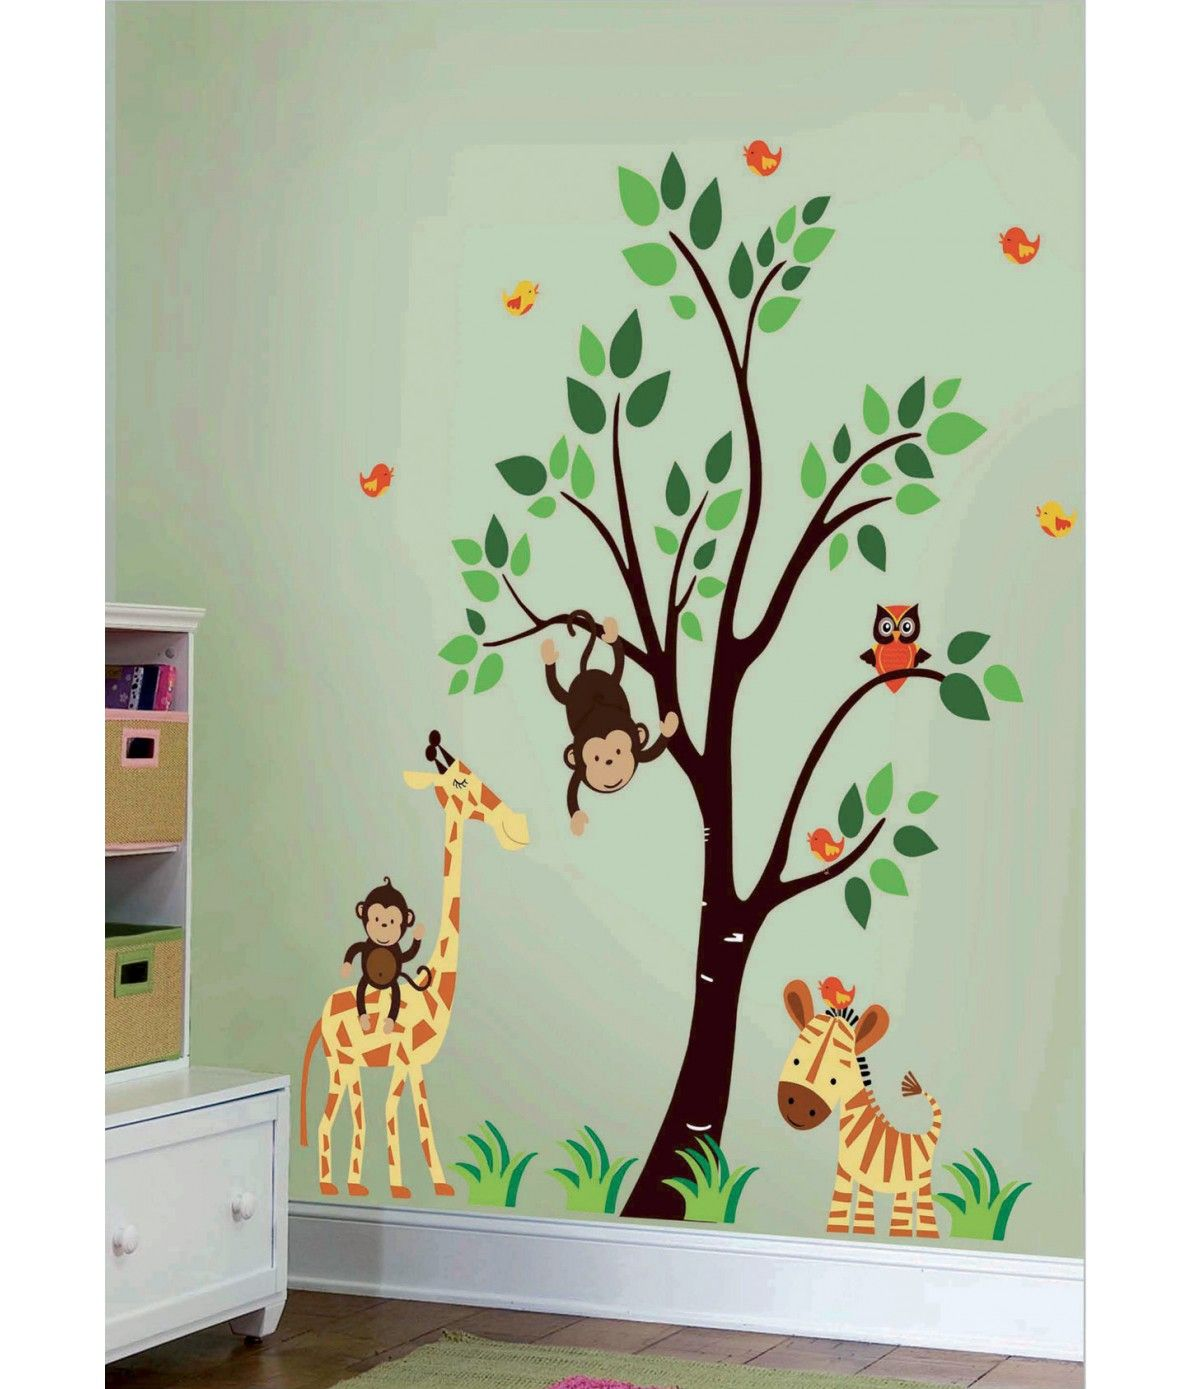 Artistic Vinyl Blik Mural Wall Sticker Jungle Family Wall Decal - Nursery wall decals jungle